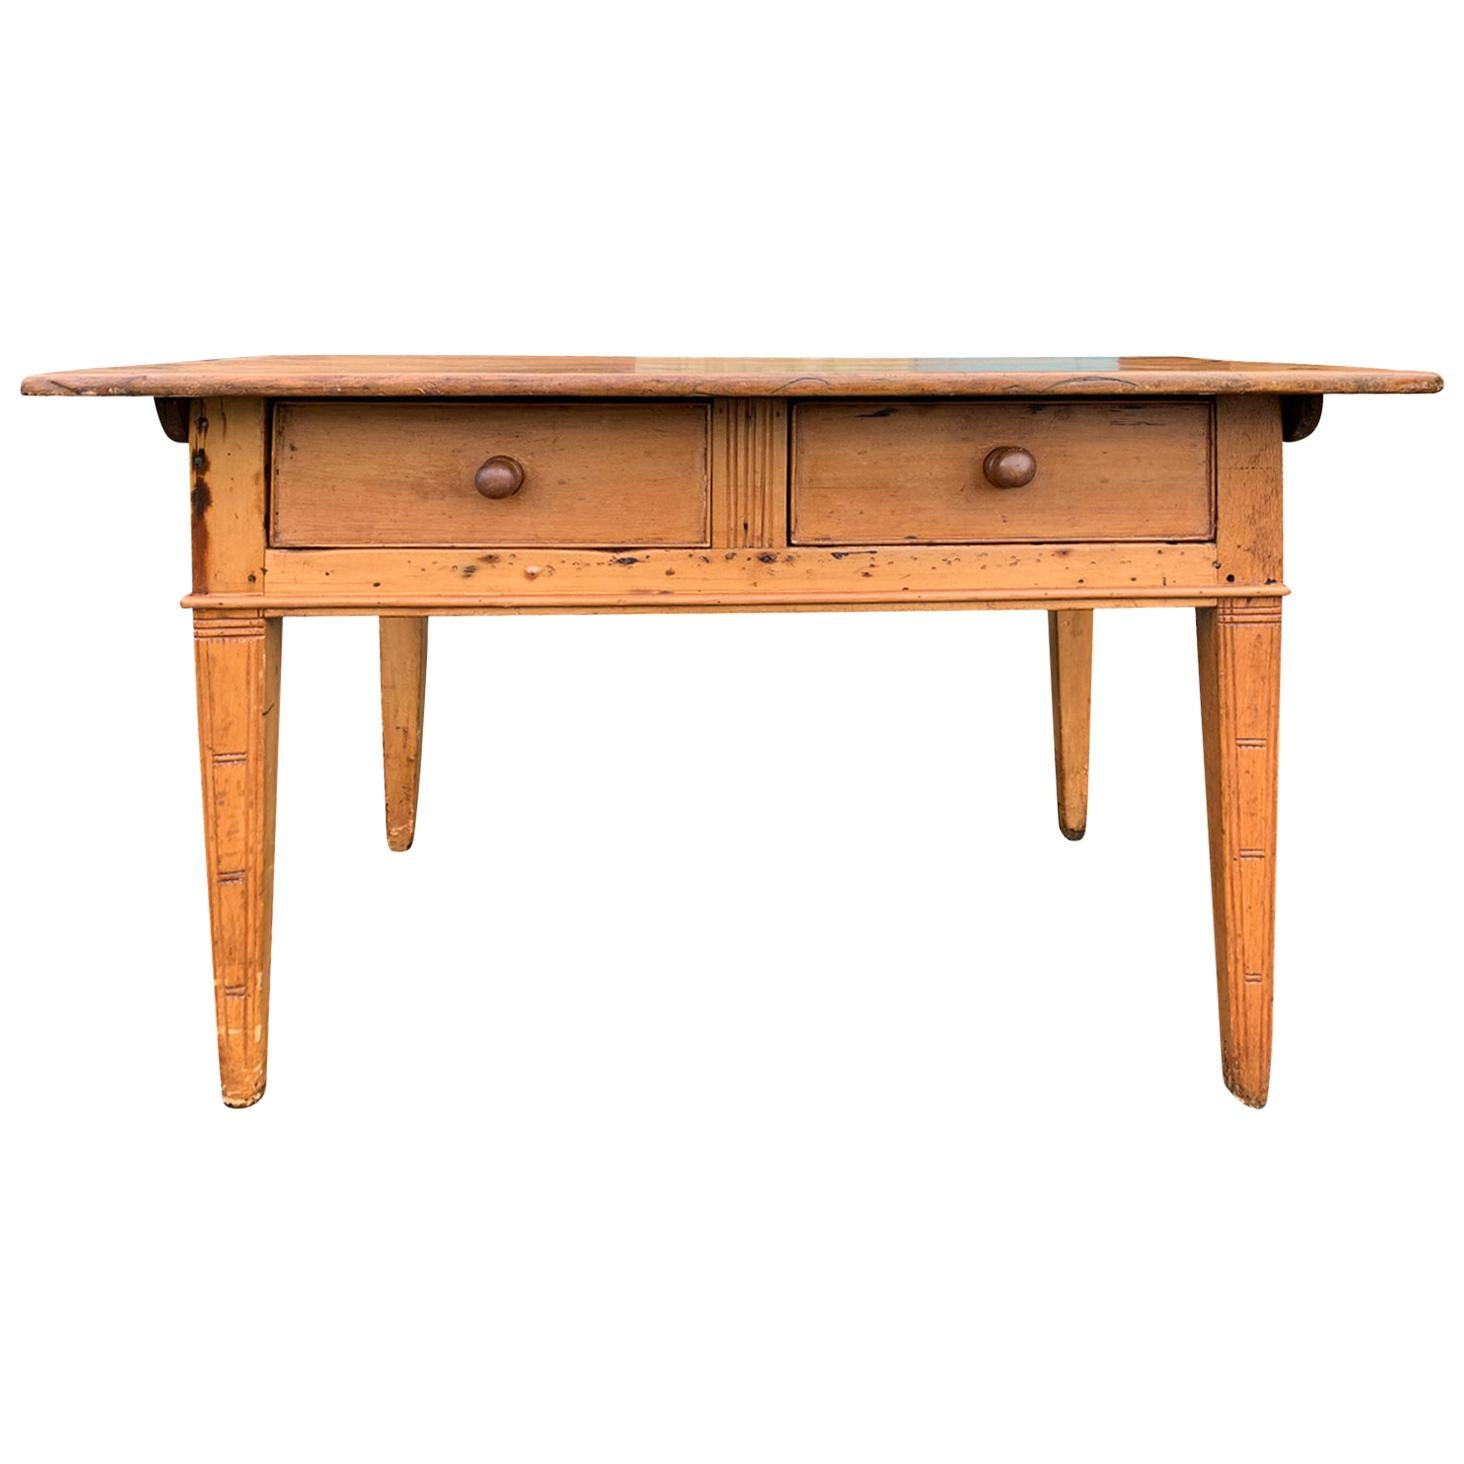 19th Century Continental Work Table with Two Drawers